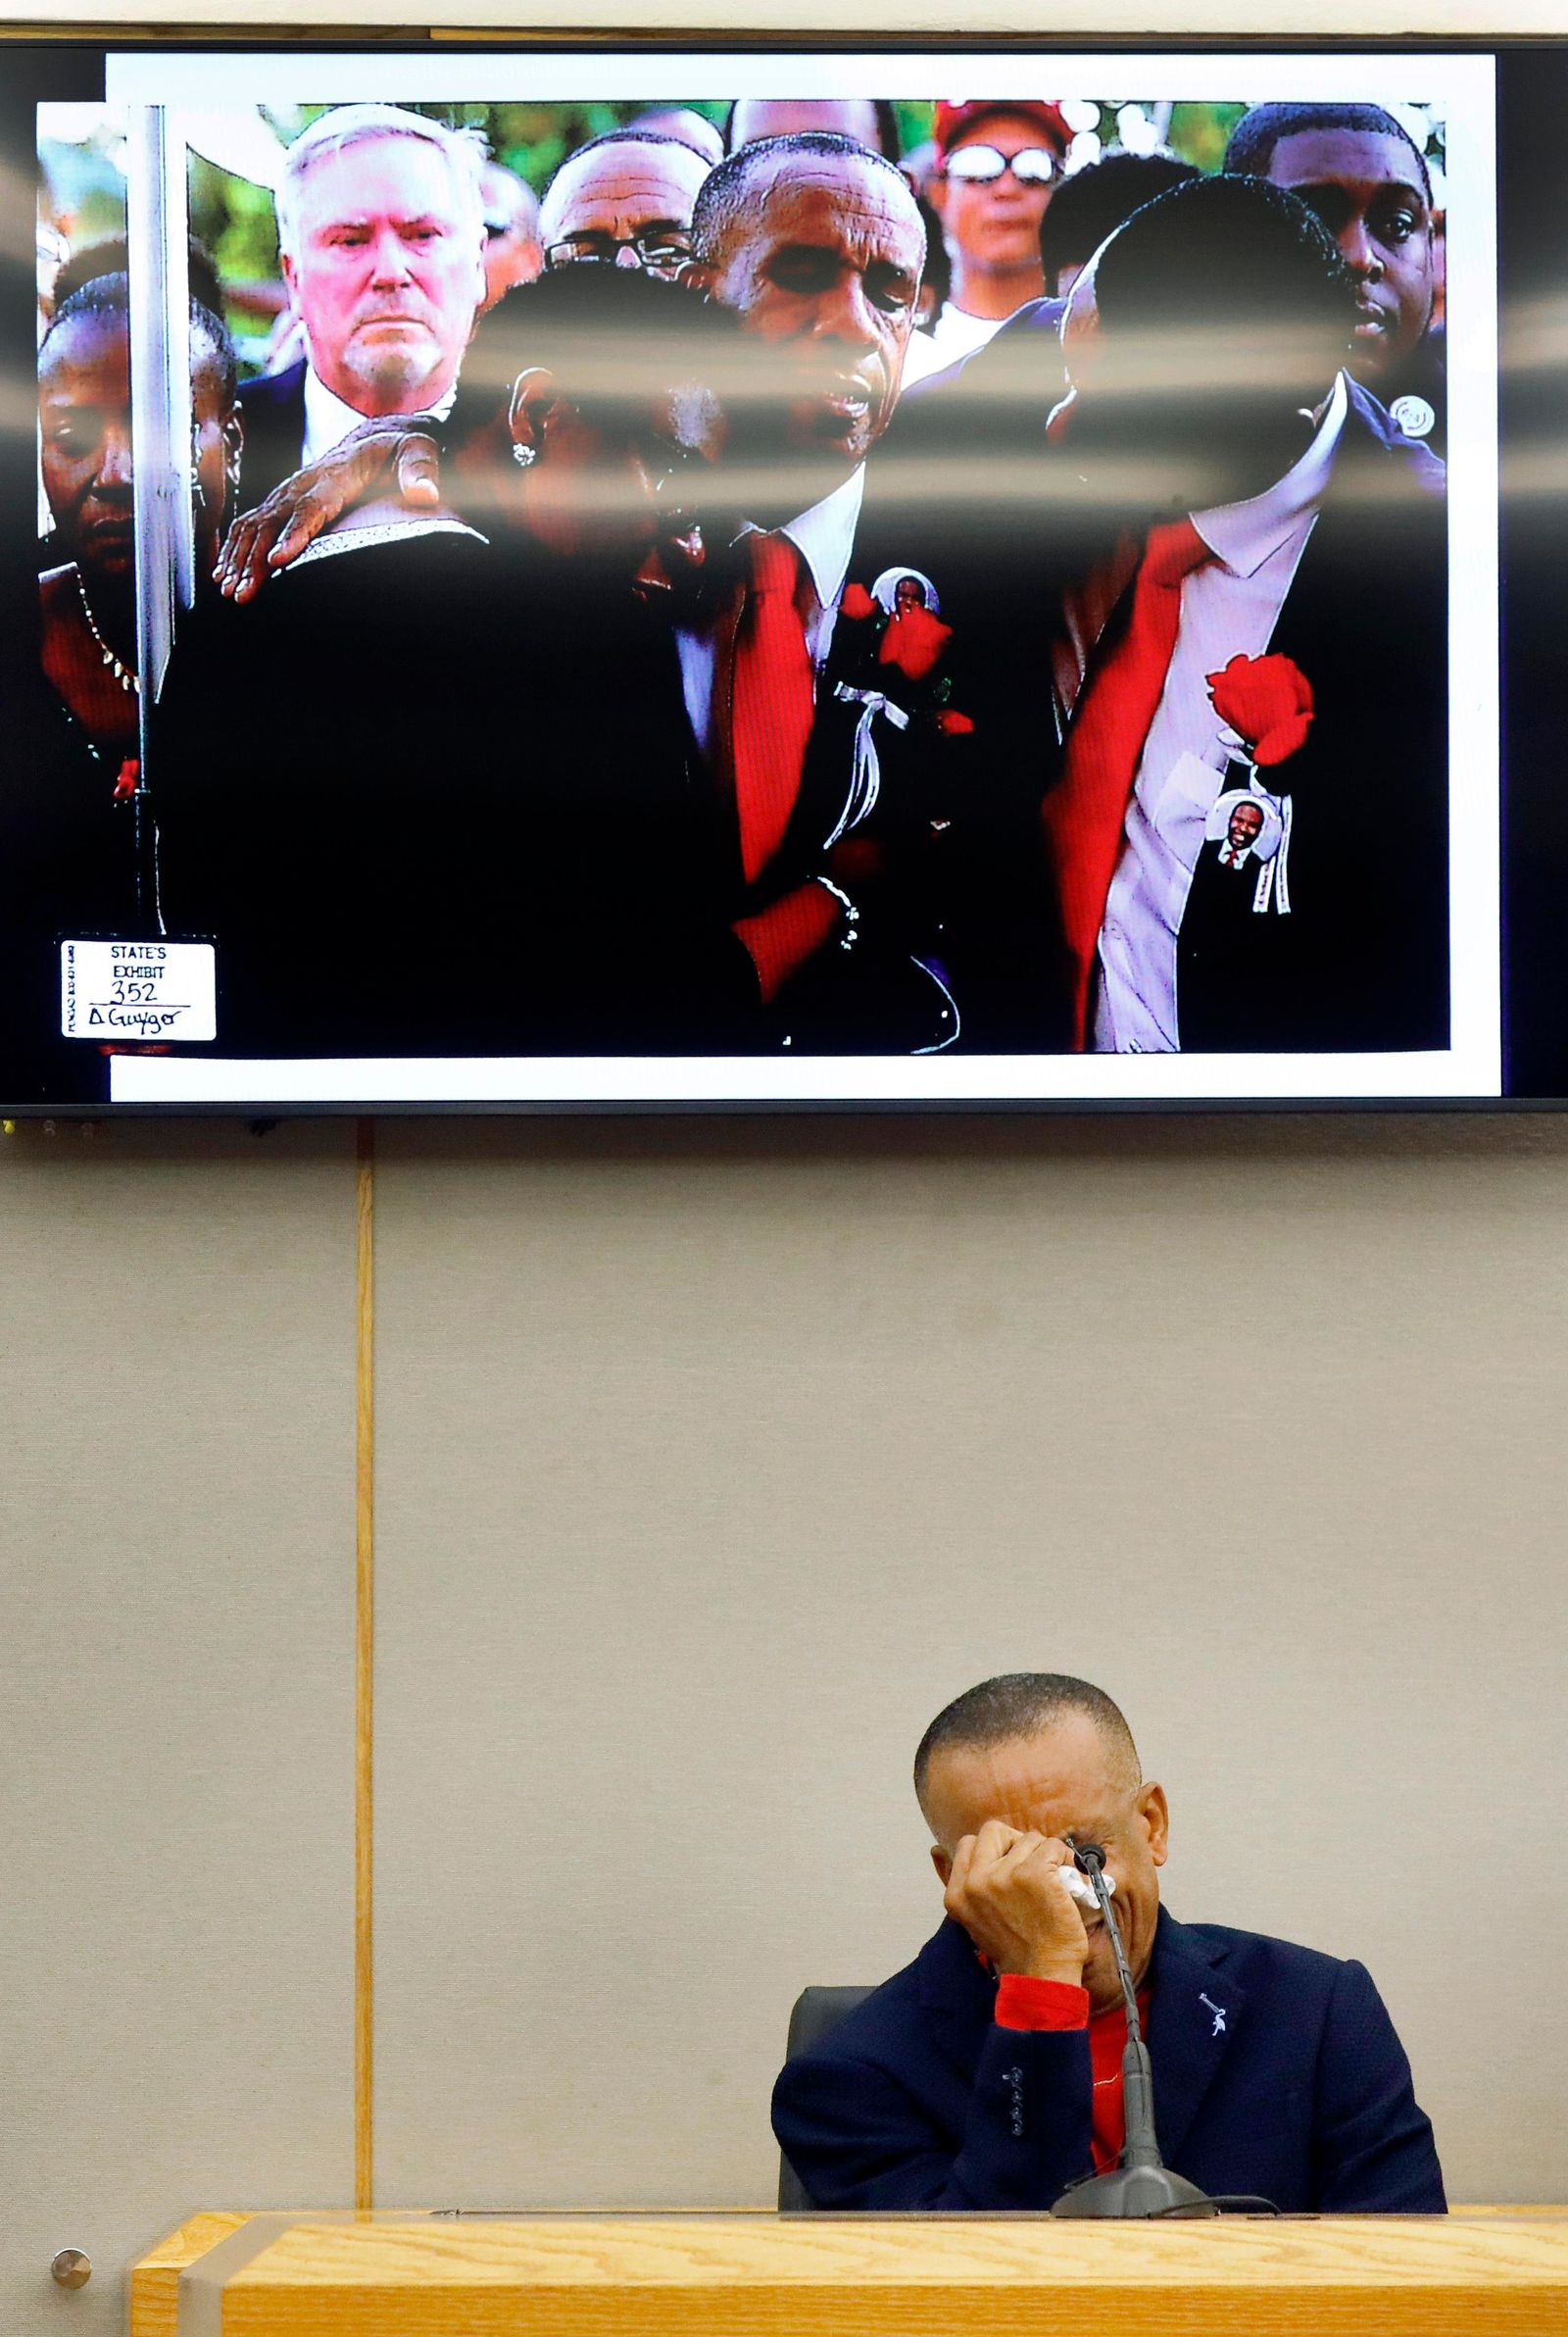 Bertrum Jean, father of Botham Jean, breaks down on the witness stand talking about the day he buried his son, pictured above, during the punishment phase of the trial of former Dallas police officer Amber Guyger, Wednesday, Oct. 2, 2019 at the Frank Crowley Courts Building in Dallas.  Guyger was convicted of murder Tuesday in the killing of Botham Jean and faces a sentence that could range from five years to life in prison or be lowered to as little as two years if the jury decides the shooting was a crime of sudden passion. (Tom Fox/The Dallas Morning News via AP, Pool)